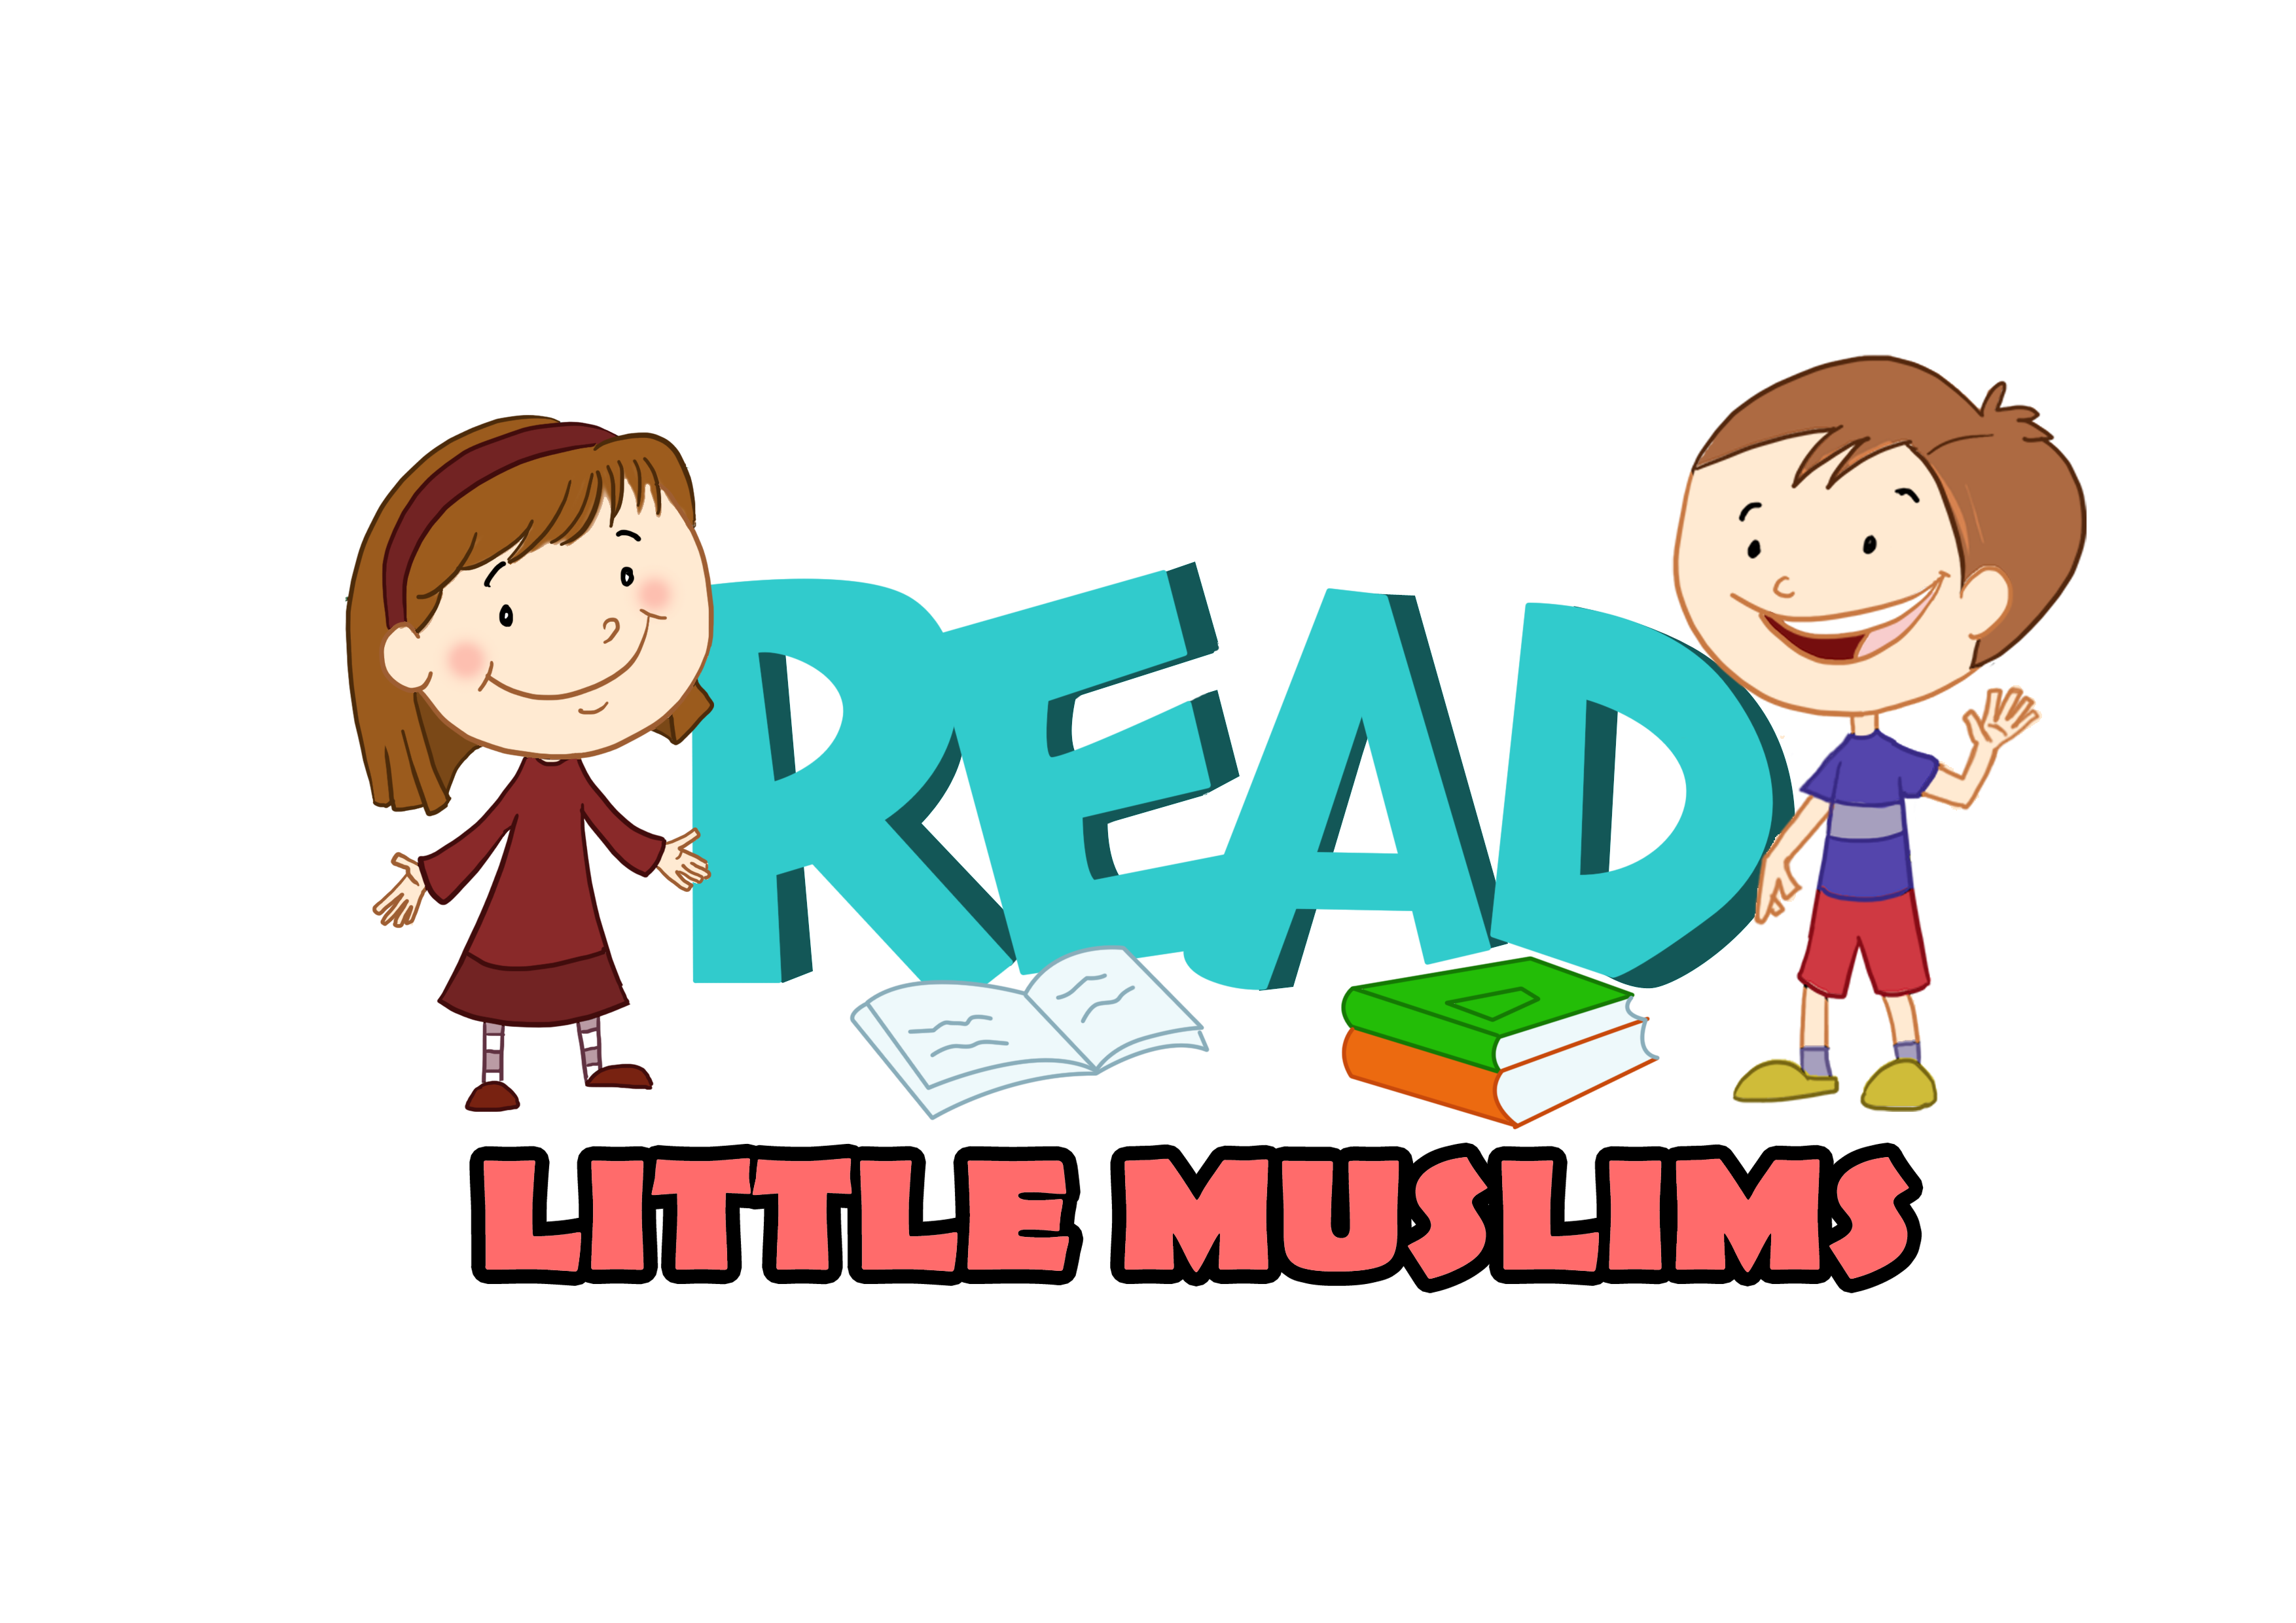 Book talk clipart graphic black and white download Book Reviews – READ Little Muslims graphic black and white download